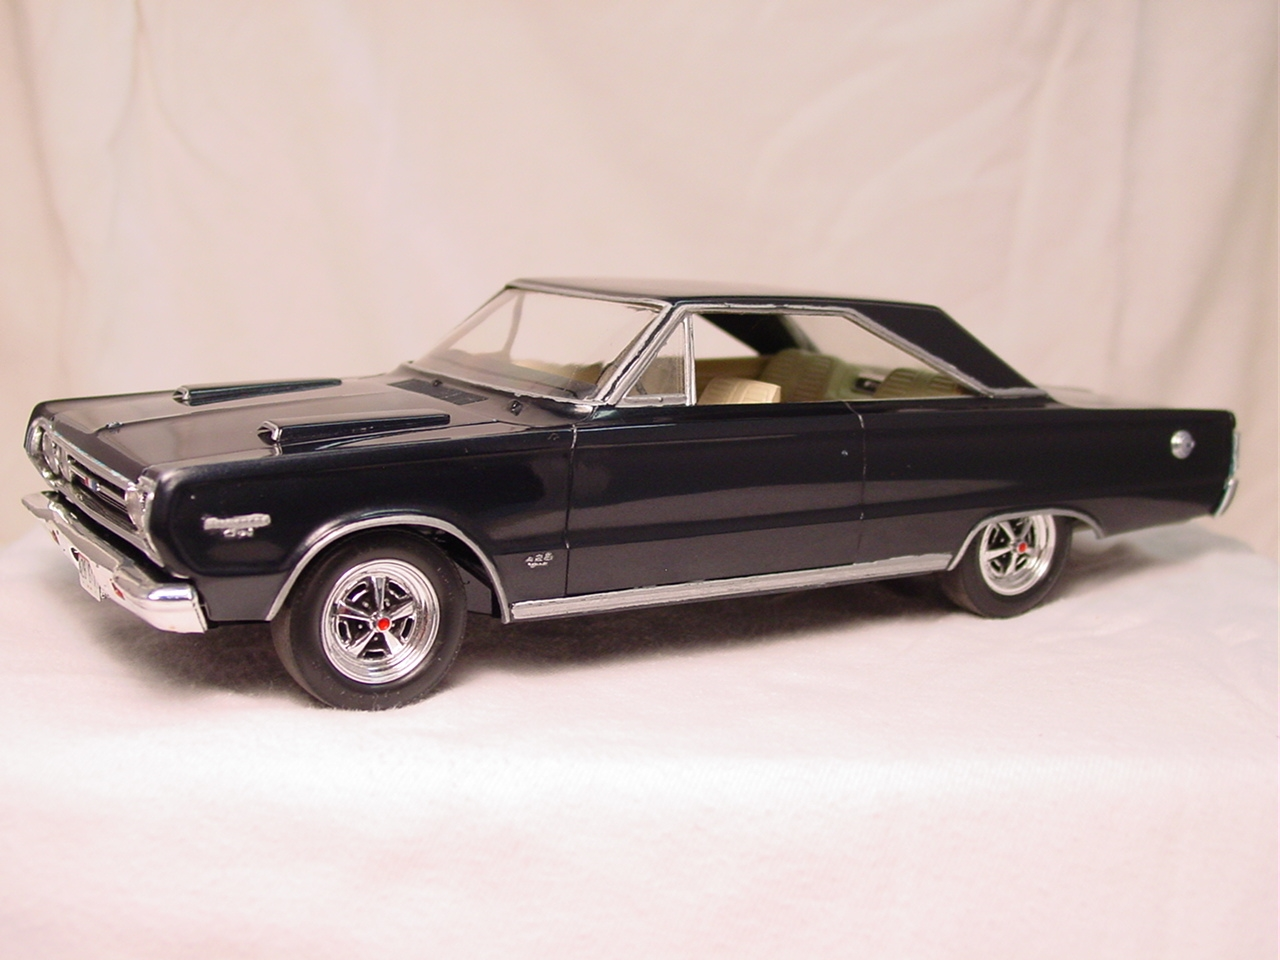 1967 Plymouth Gtx Revell Scale Importnut Net